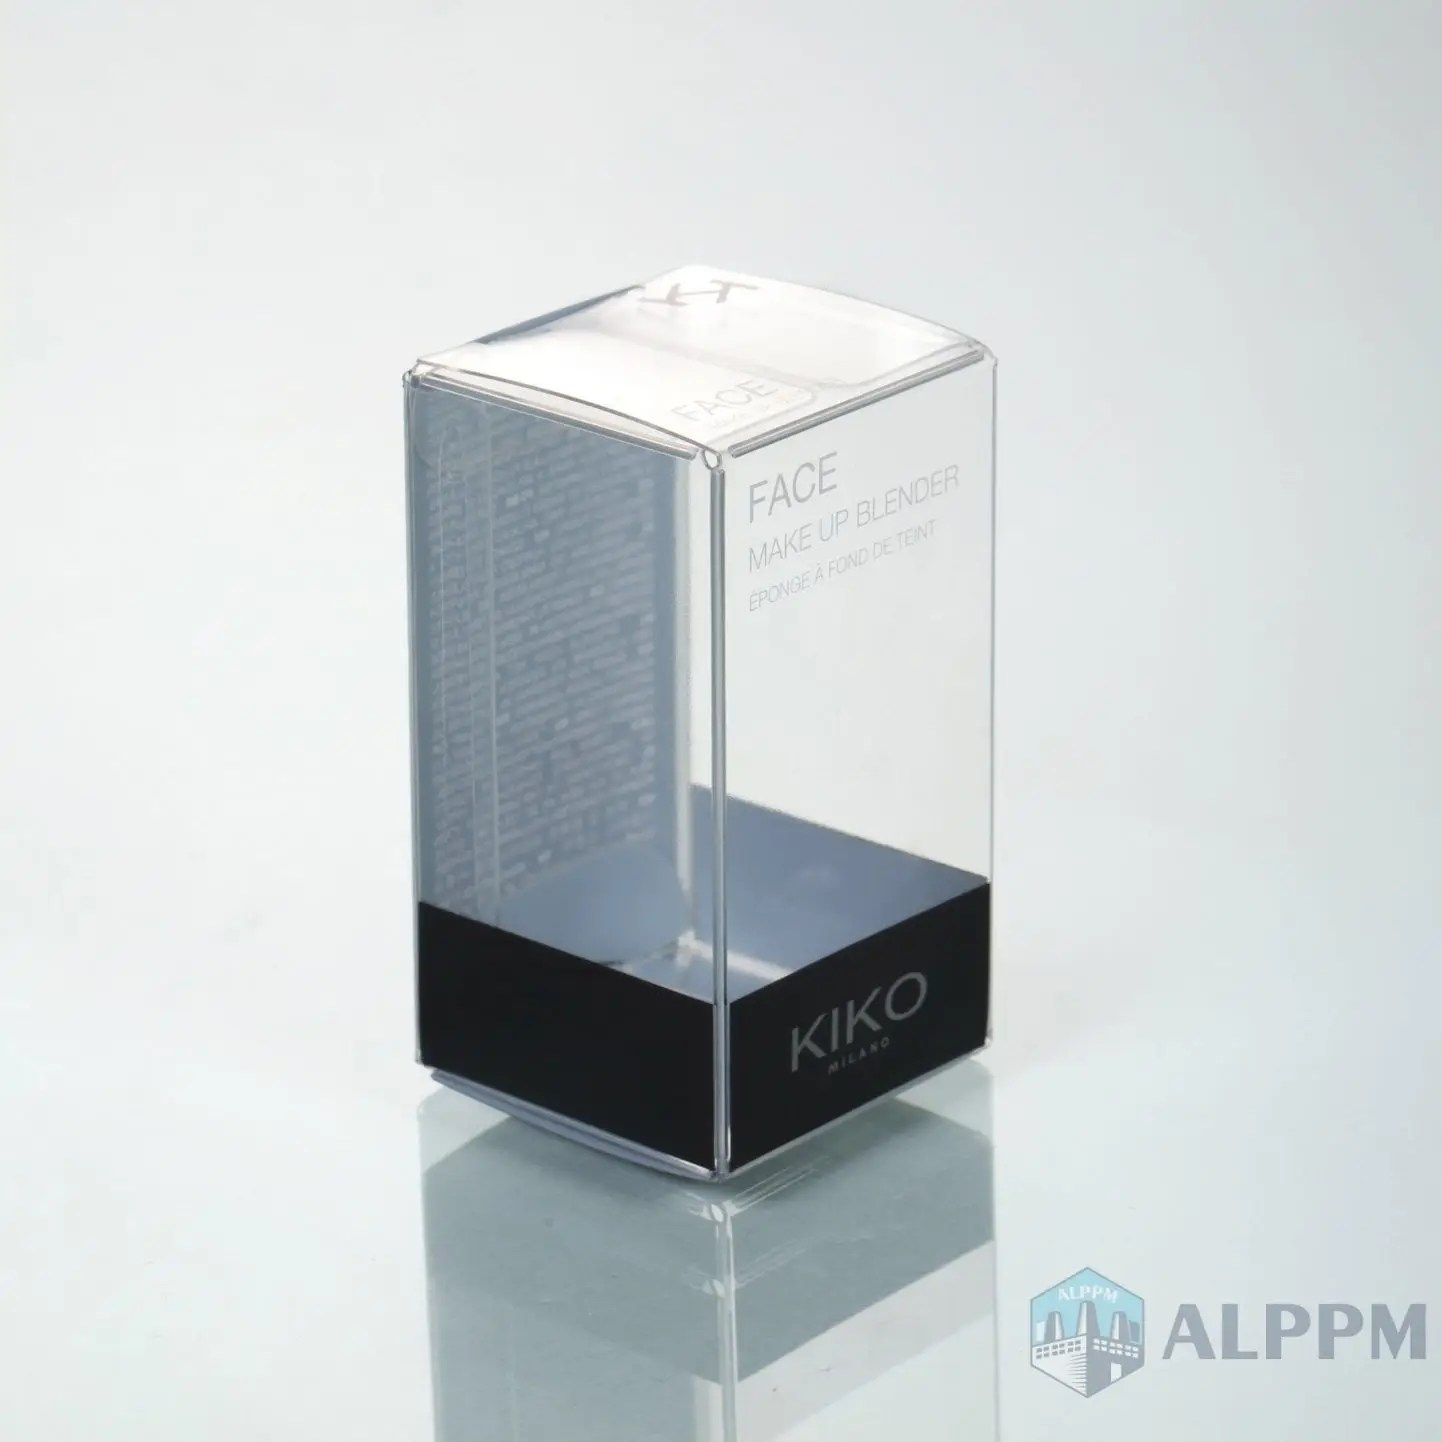 Clear Box Clear Packaging Boxes Pvc Pet Box For Packaging Alppm